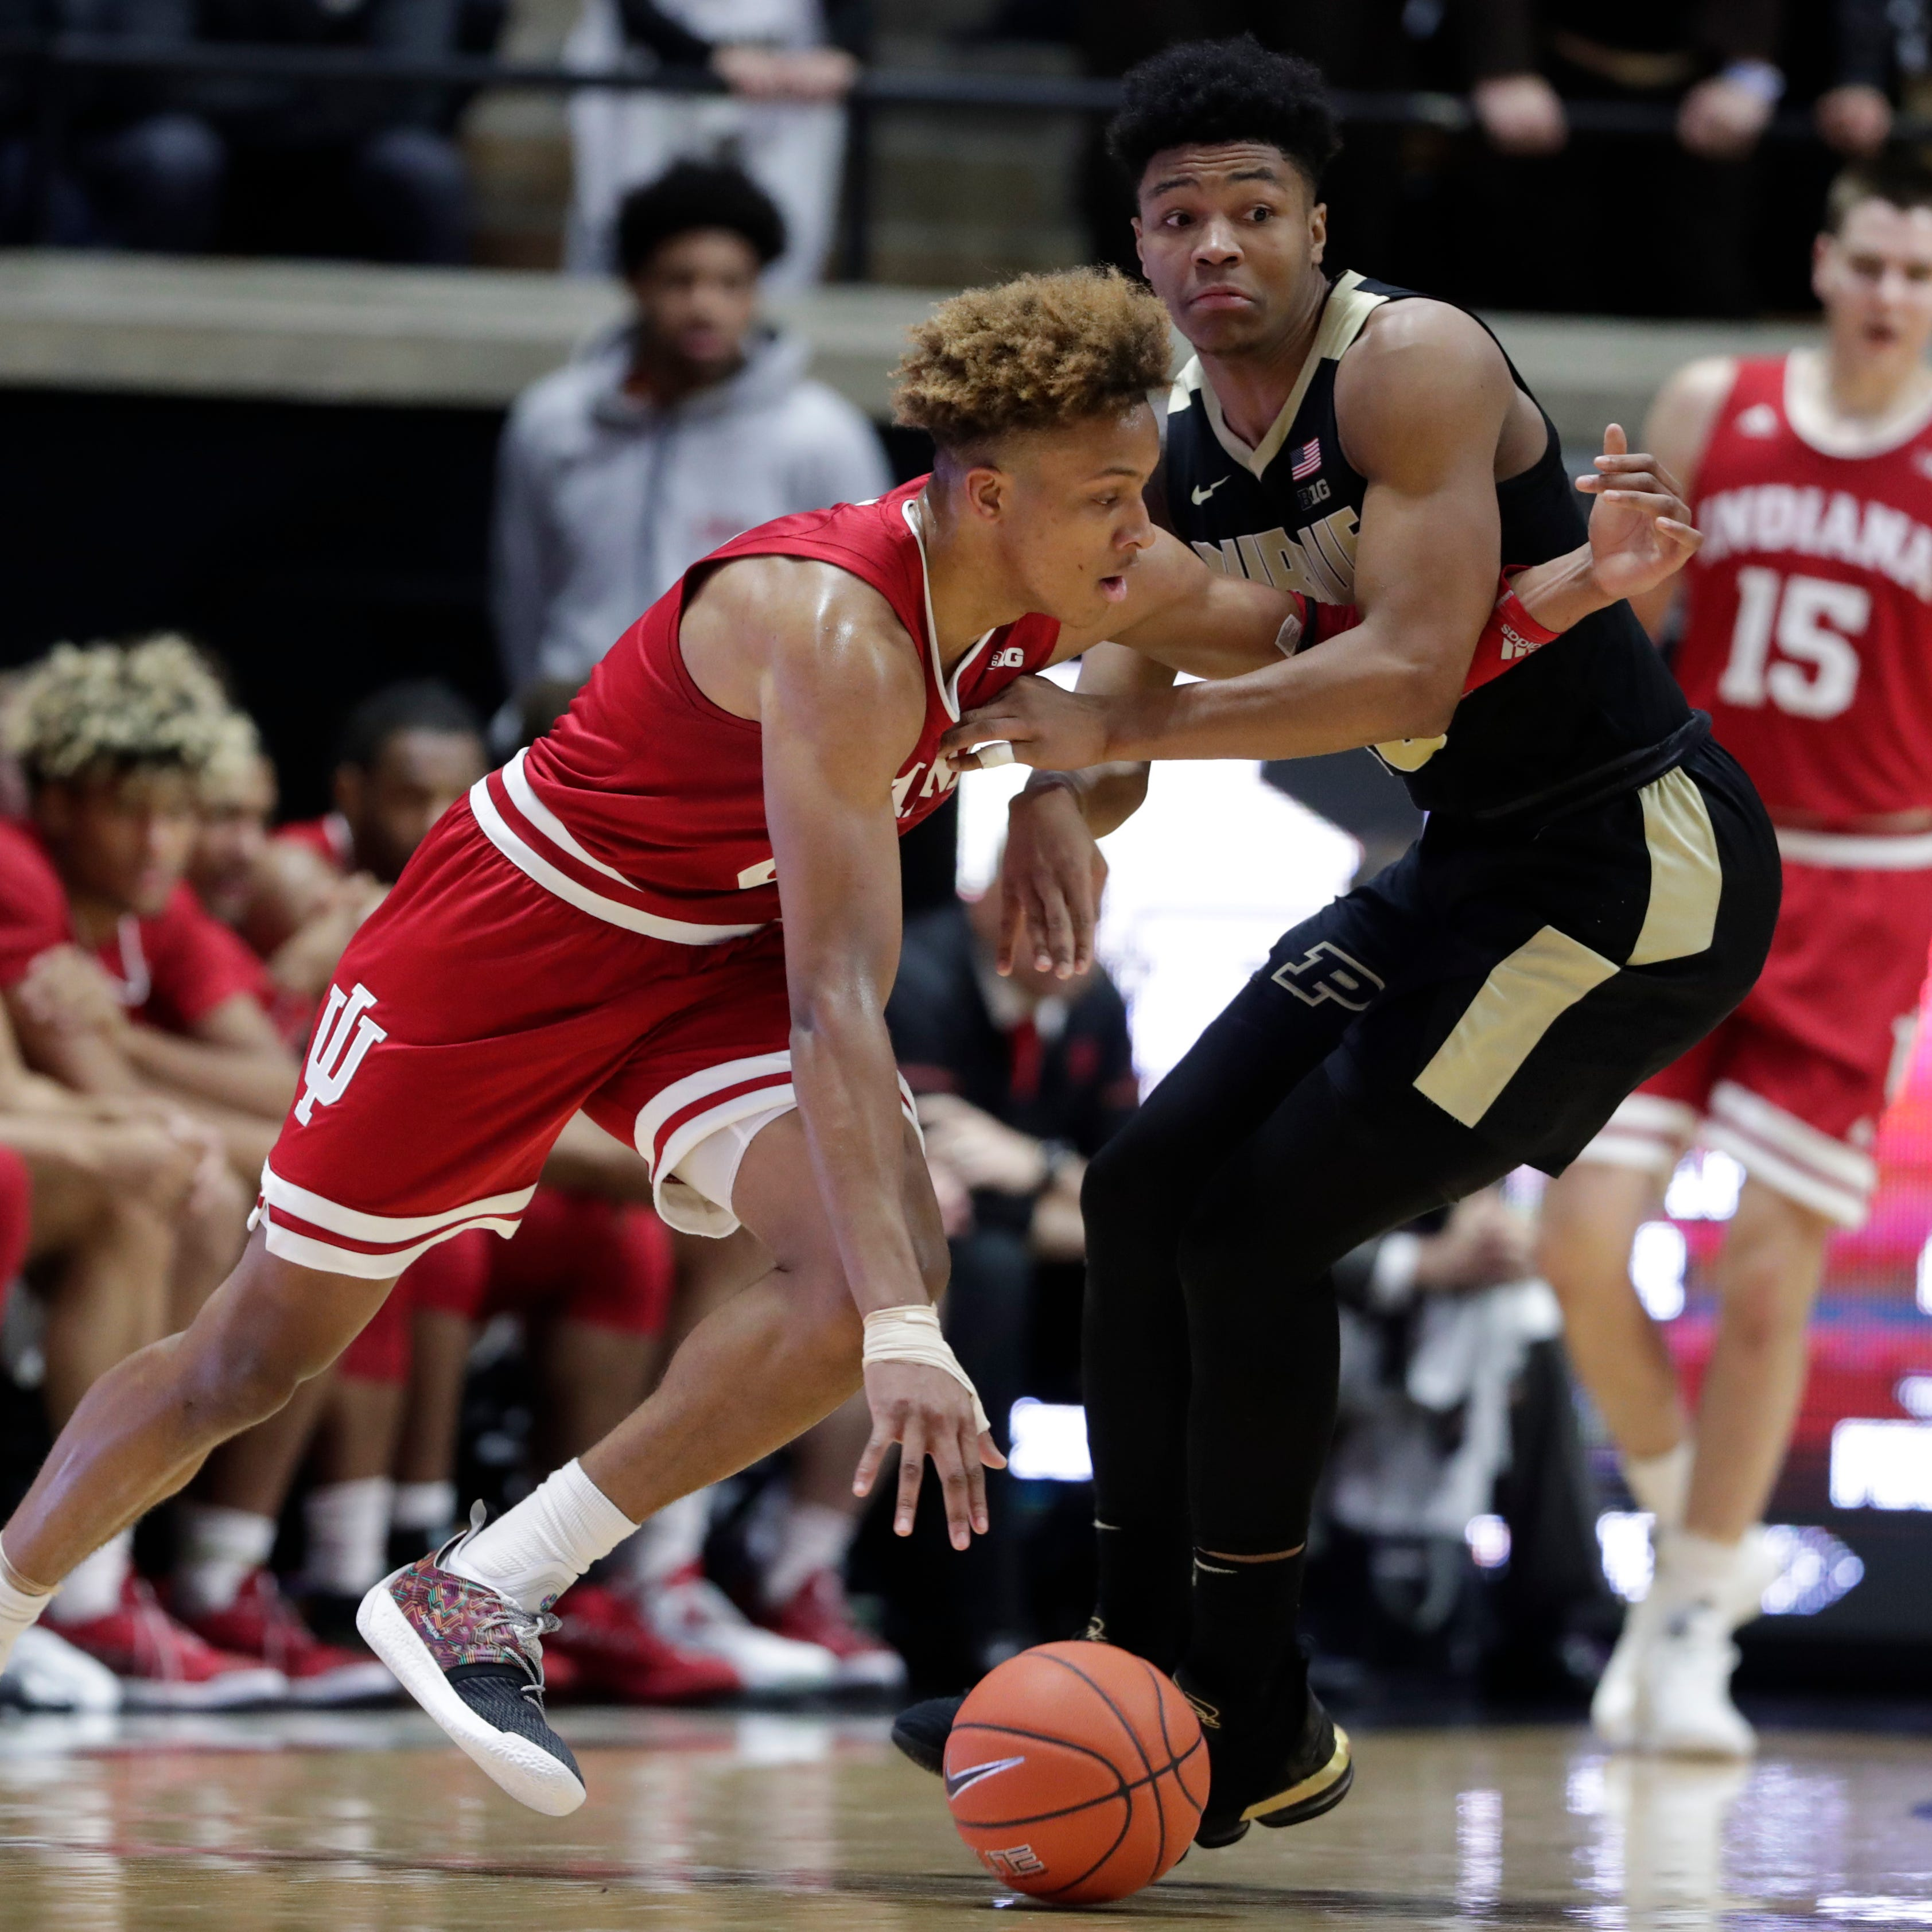 Doyel: Purdue destroys IU after Nojel Eastern destroys Romeo Langford, and Matt Painter destroys Archie Miller